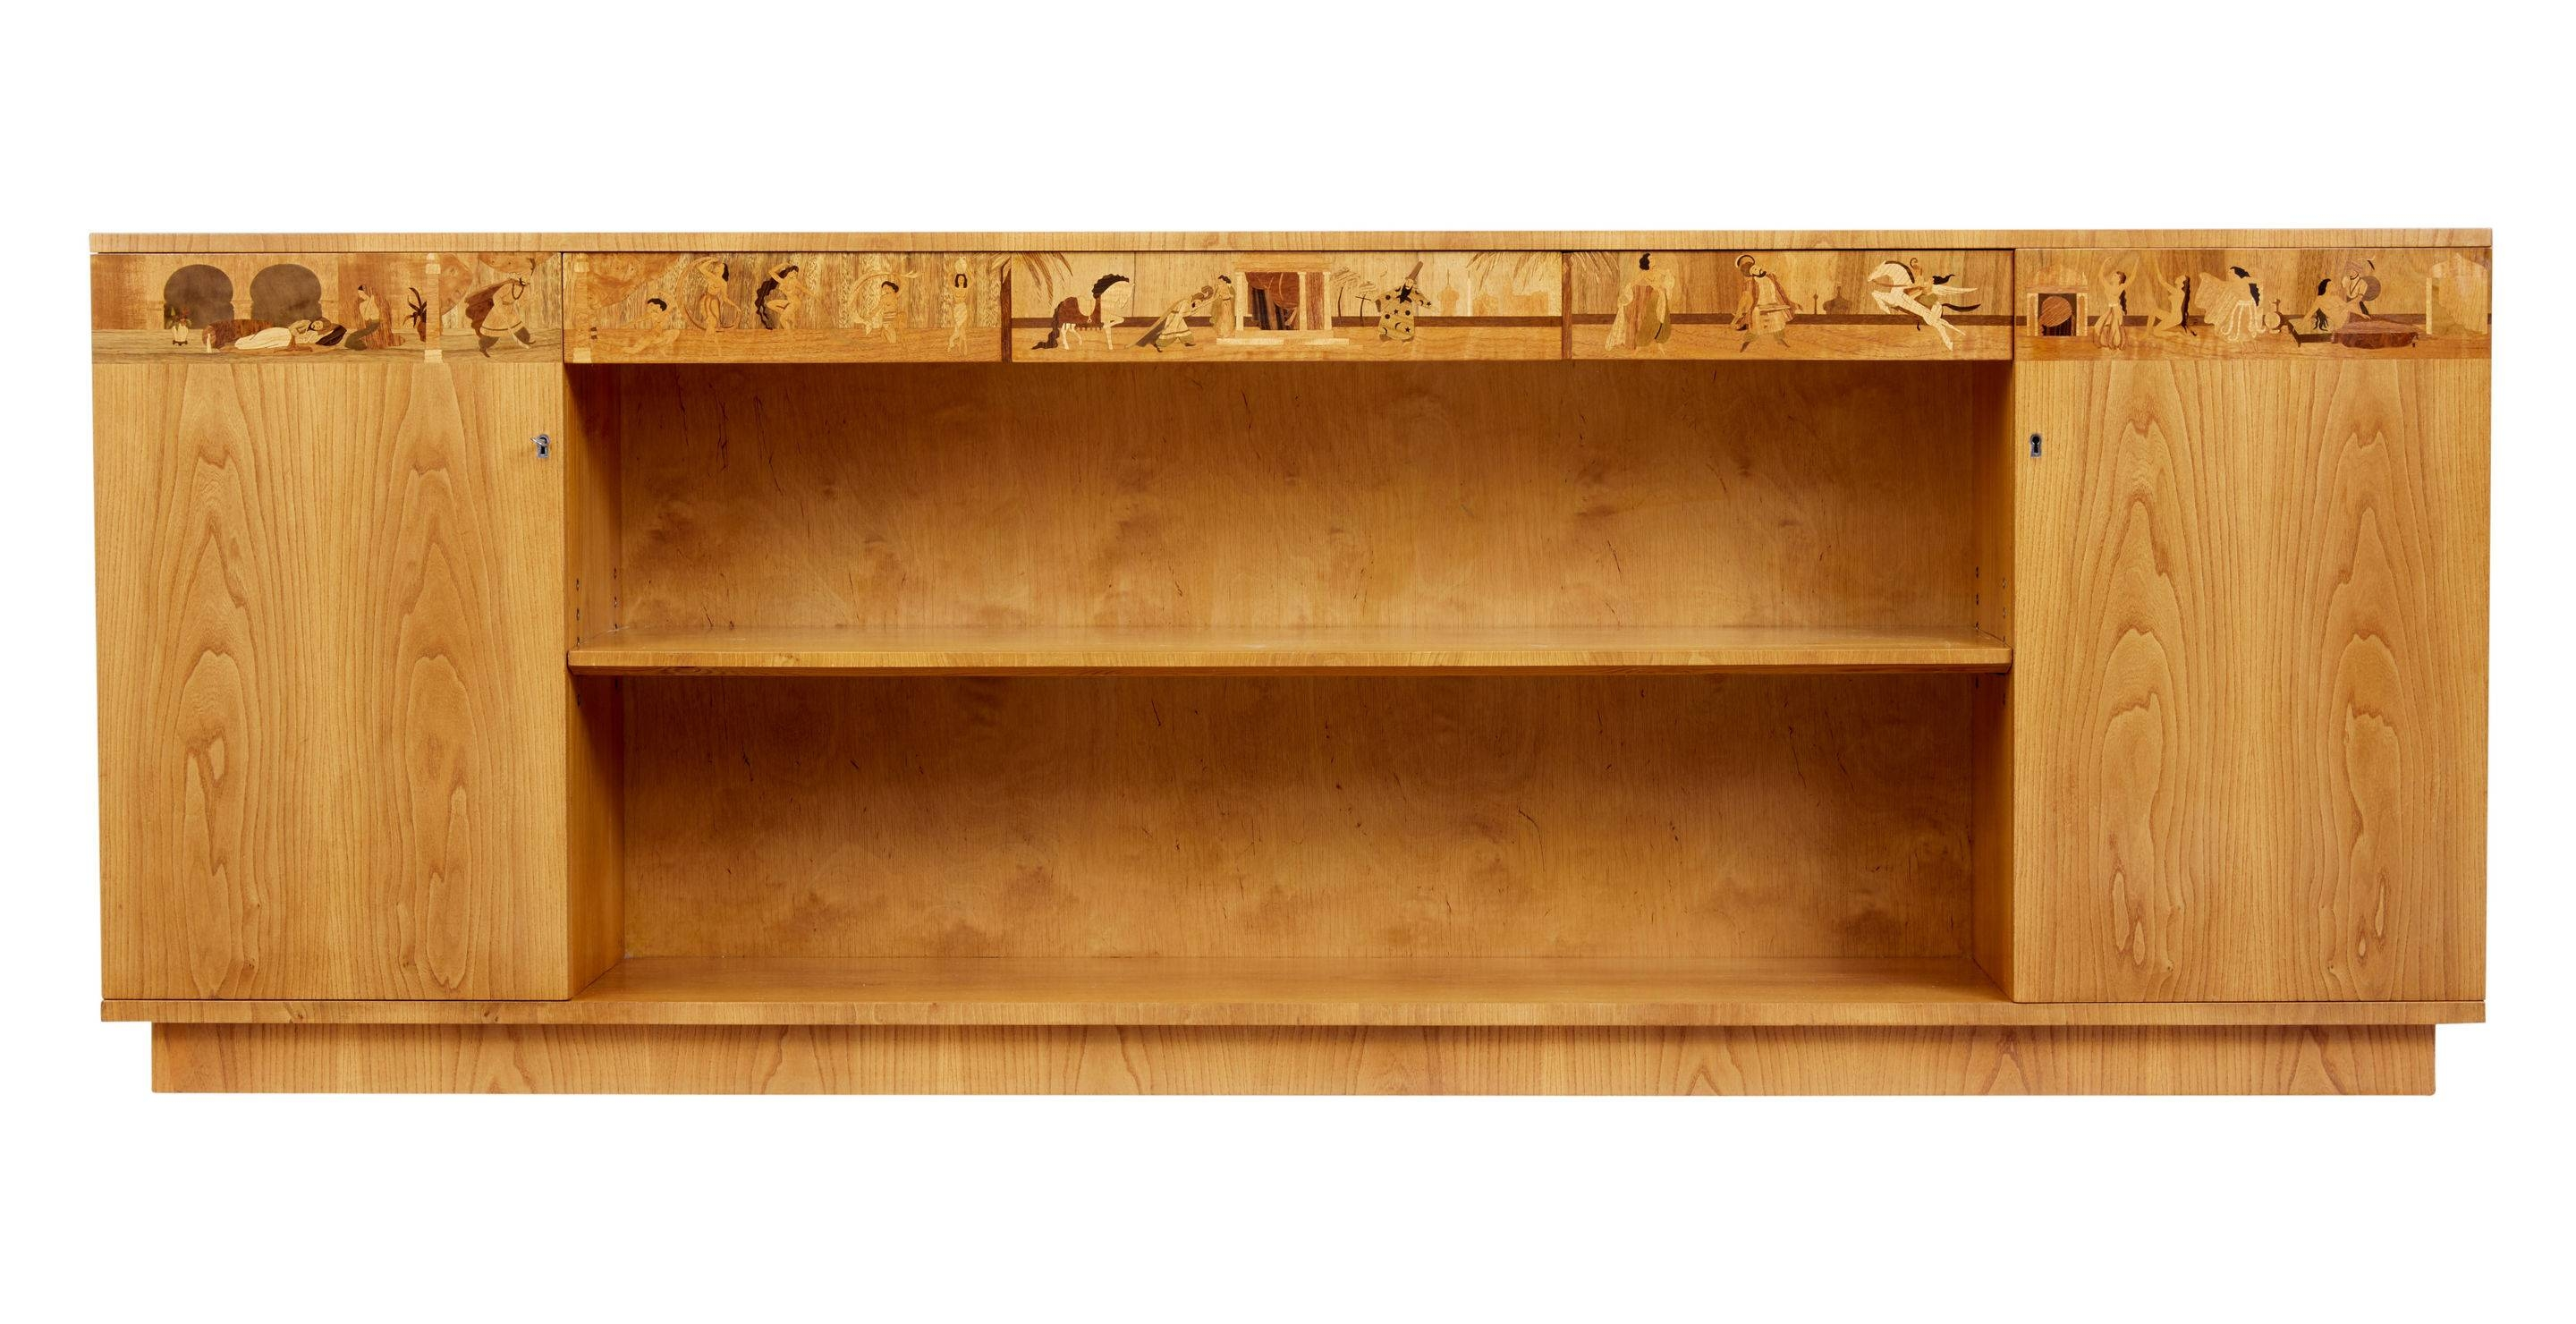 Impressive Large Elm Inlaid Scandinavian Low Bookcase (1950 Sweden With Regard To Long Low Sideboards (View 8 of 15)